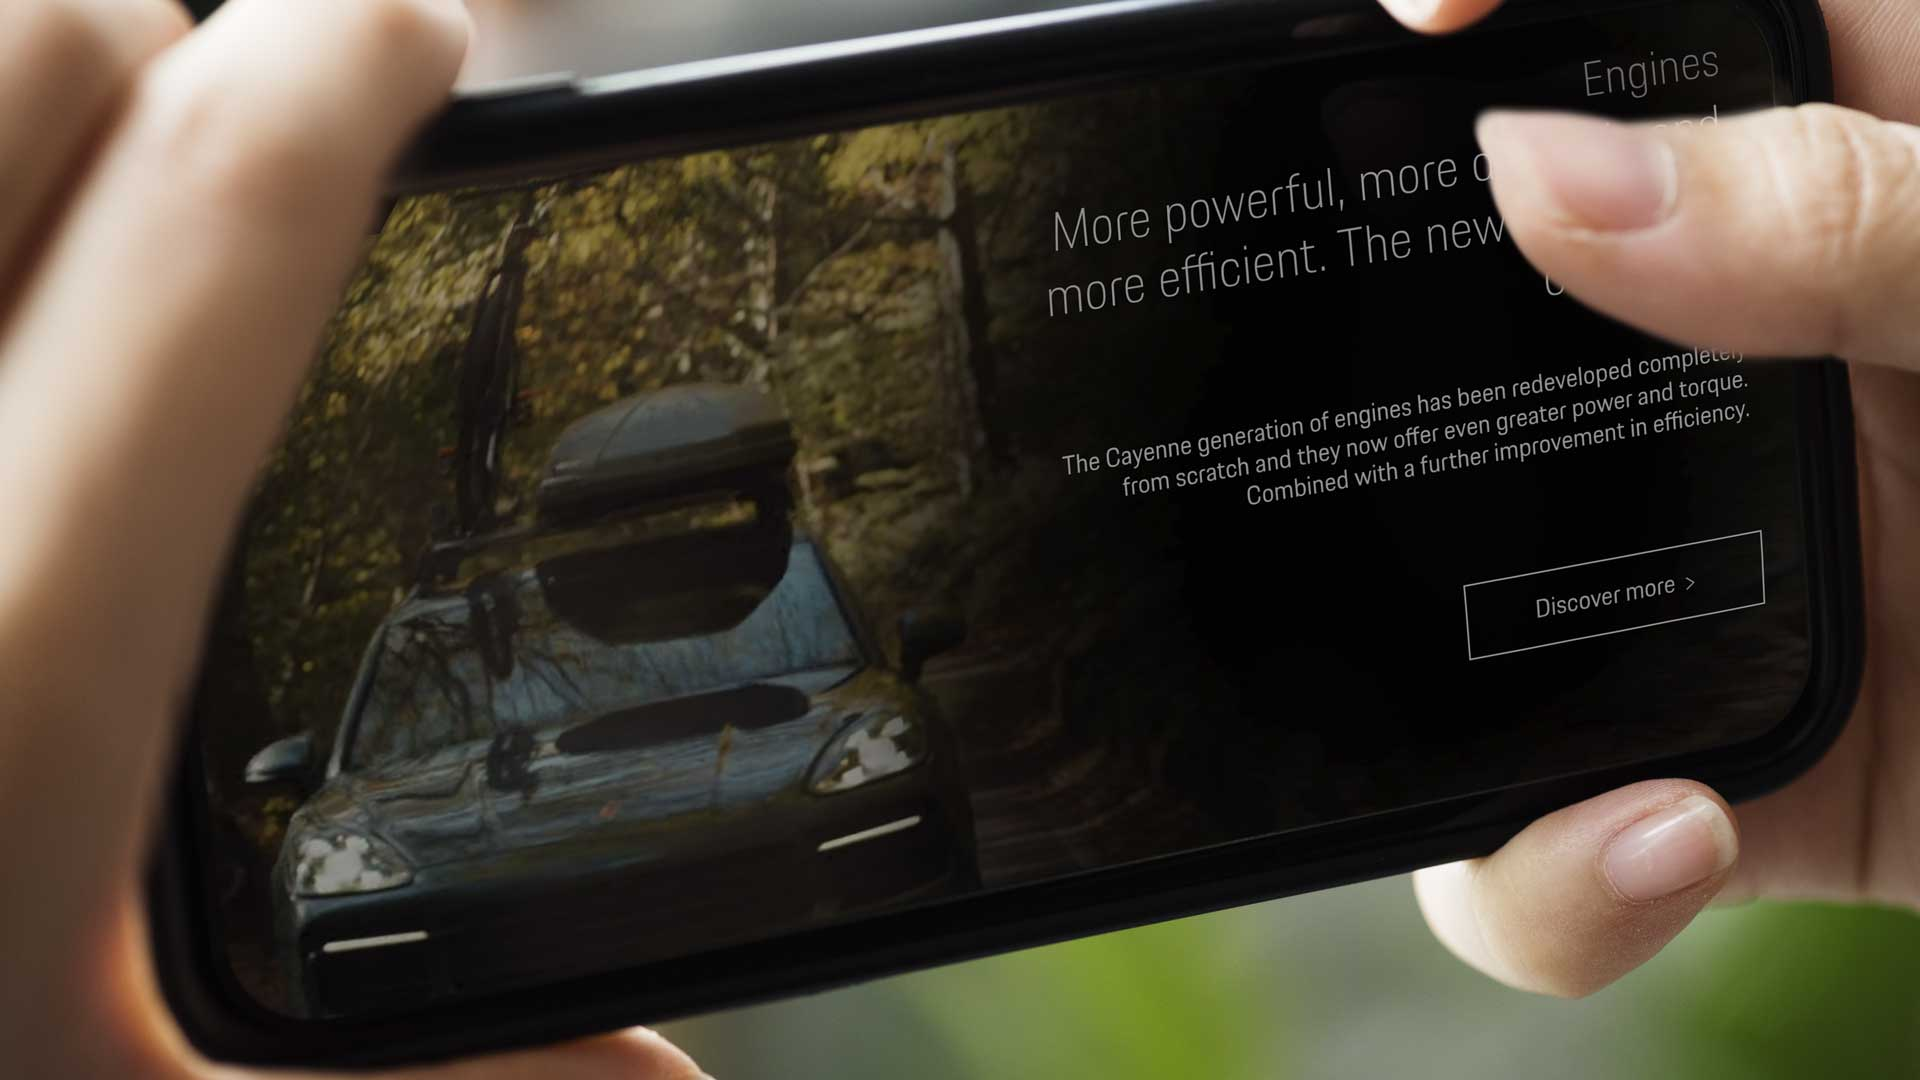 A mobile phone with an interactive video playing on the screen. It is an interactive video for the automotive brand Porsche. The overlay on screen calls out features of the car.